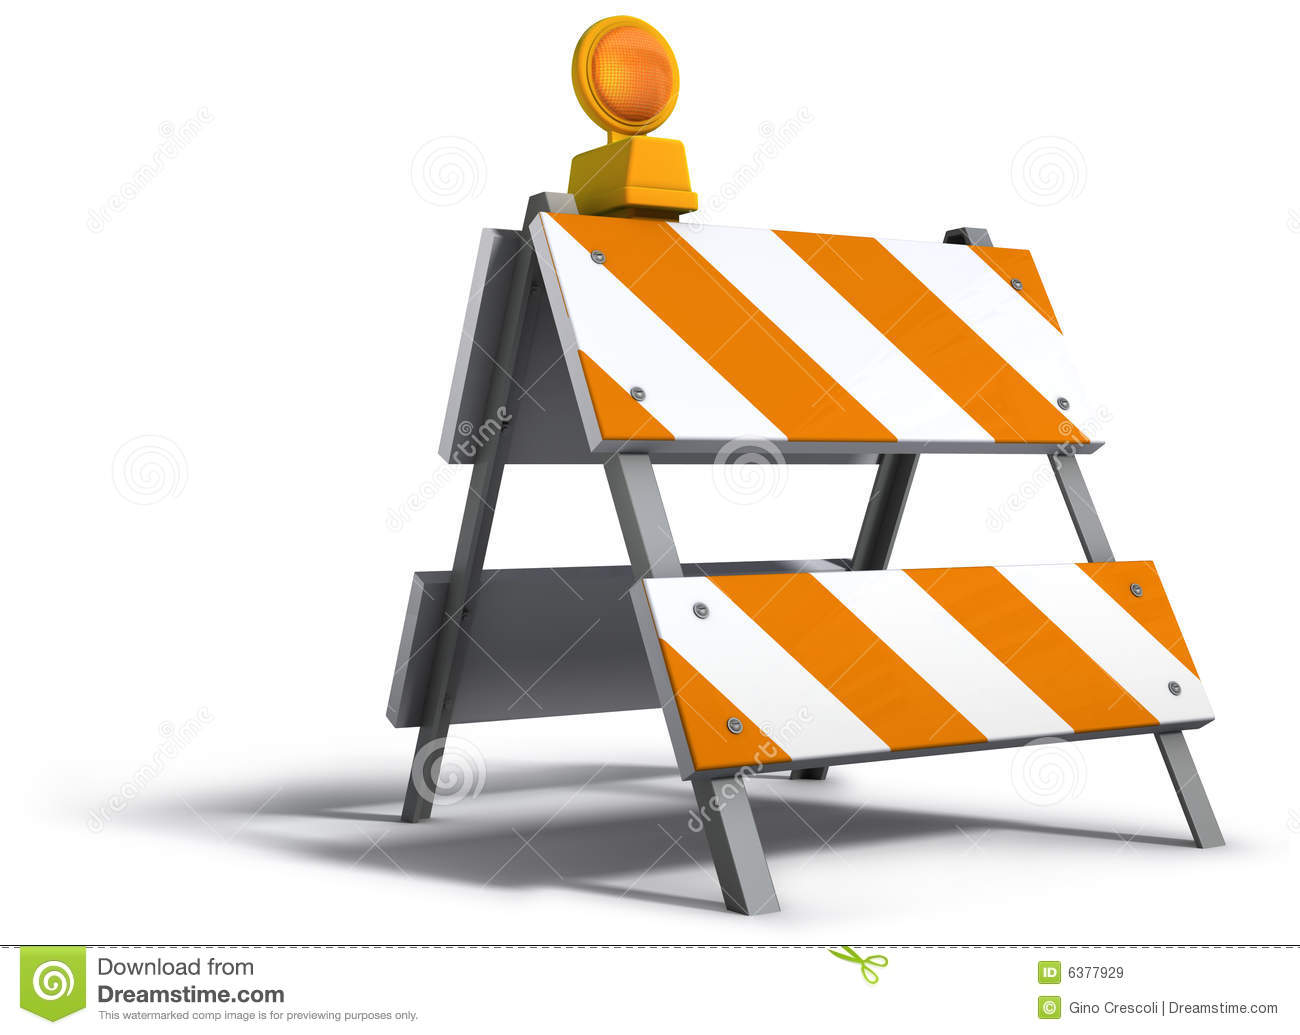 Construction barricade with flash light (clipping path included).